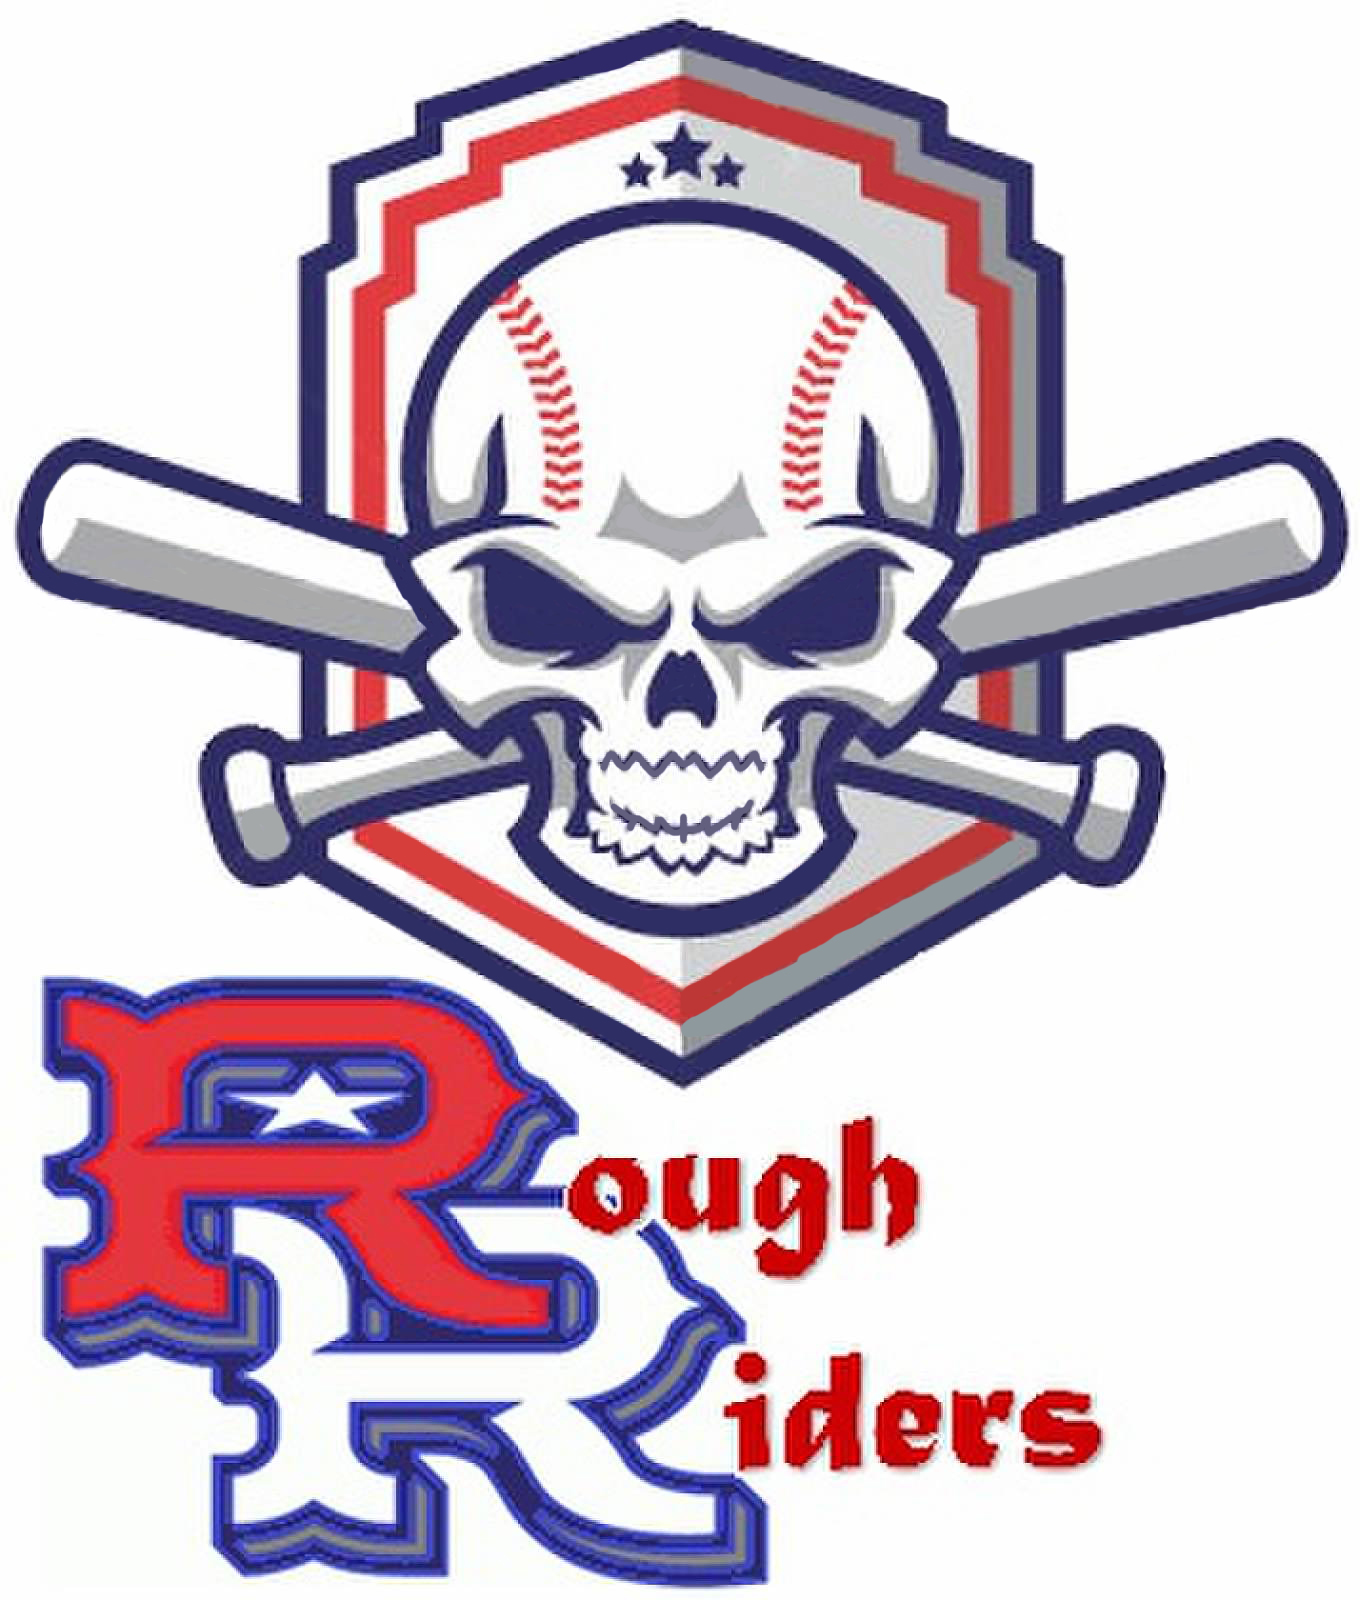 Ahwatukee Rough Riders Club Baseball Team